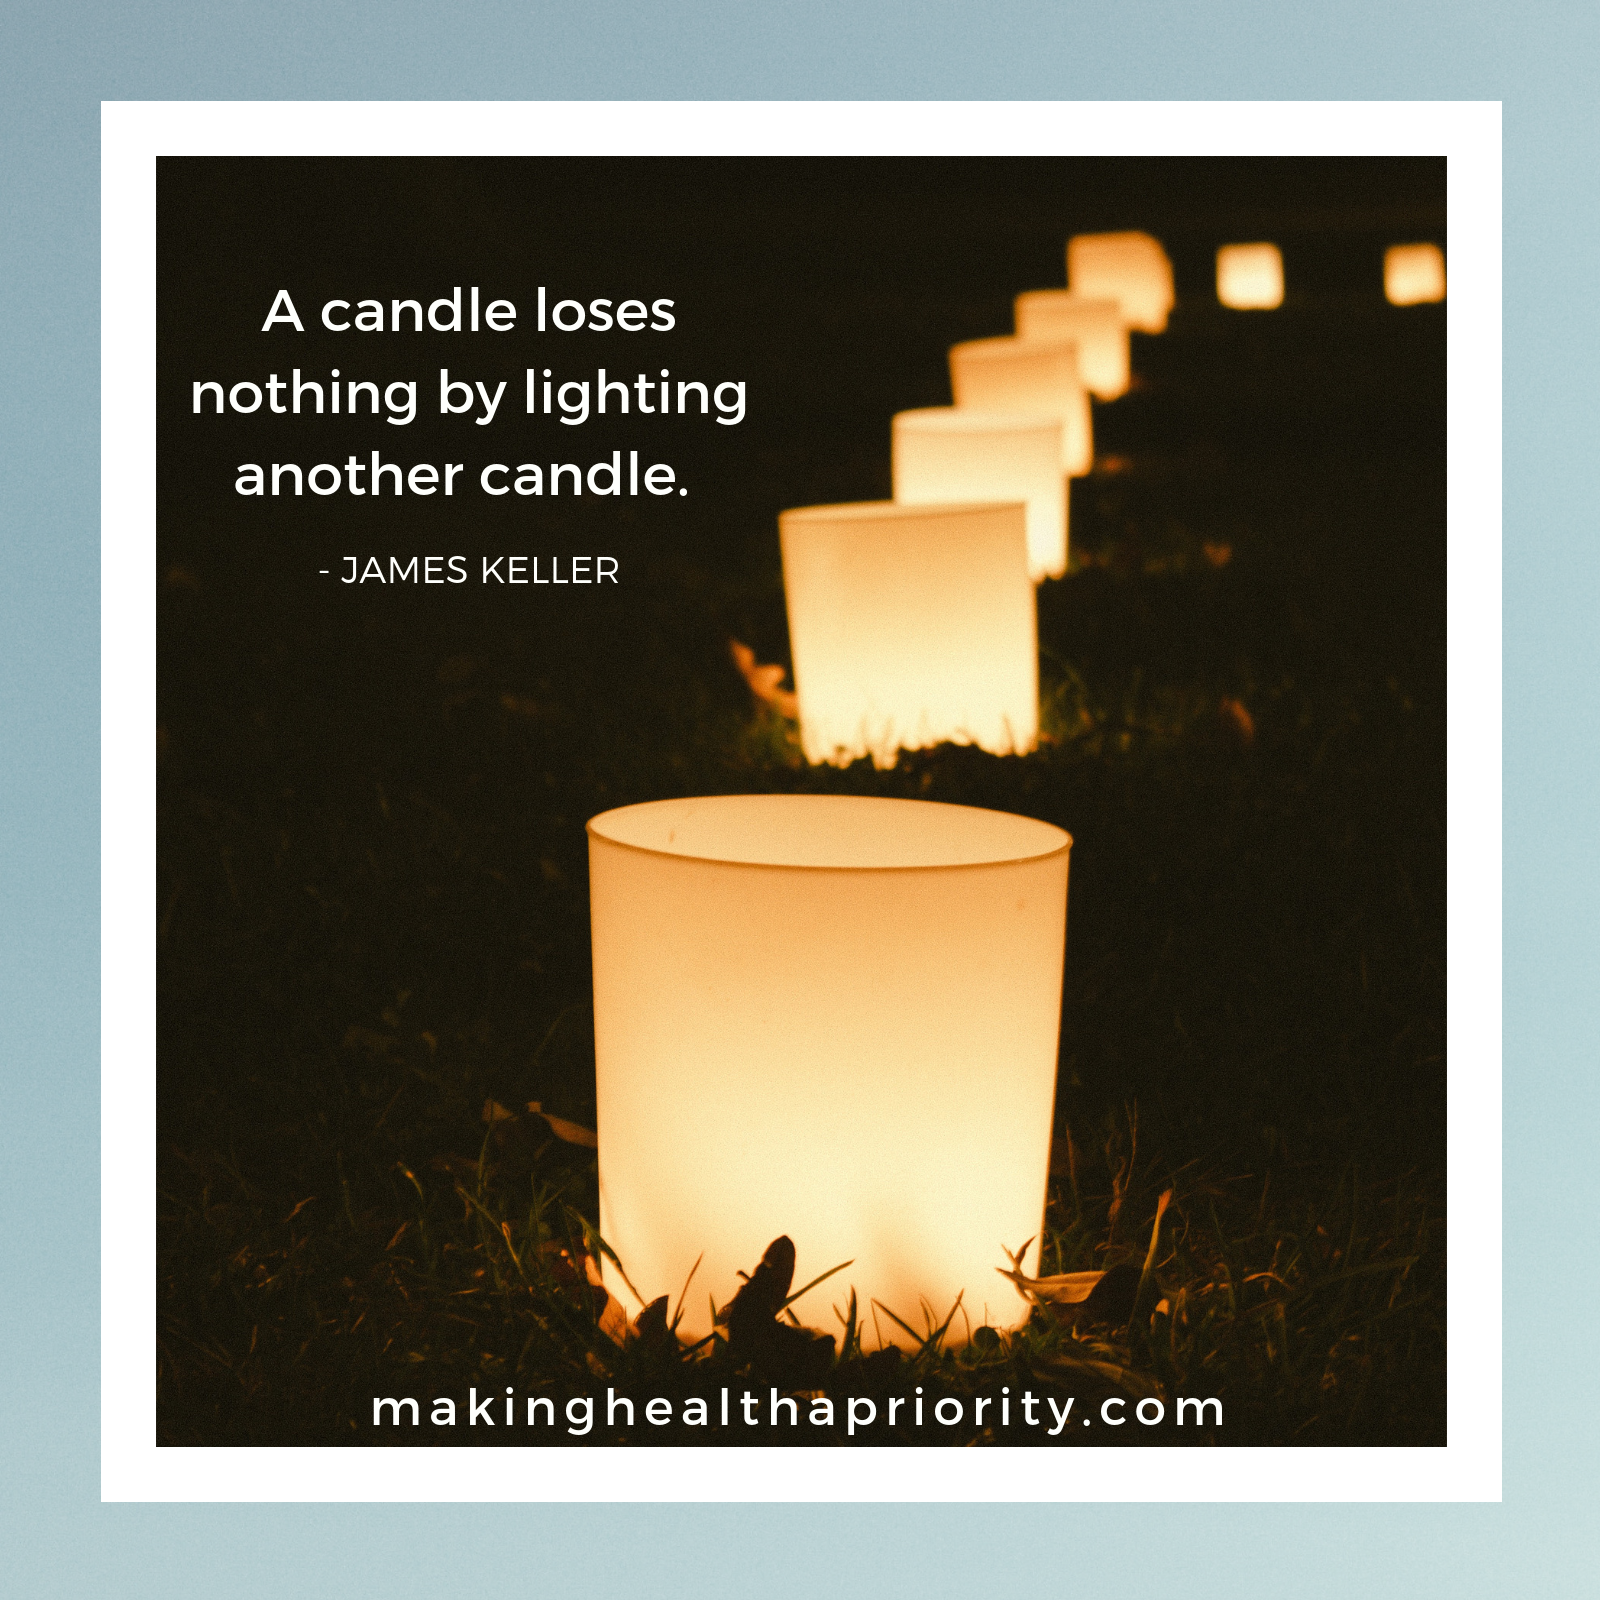 A candle loses nothing...